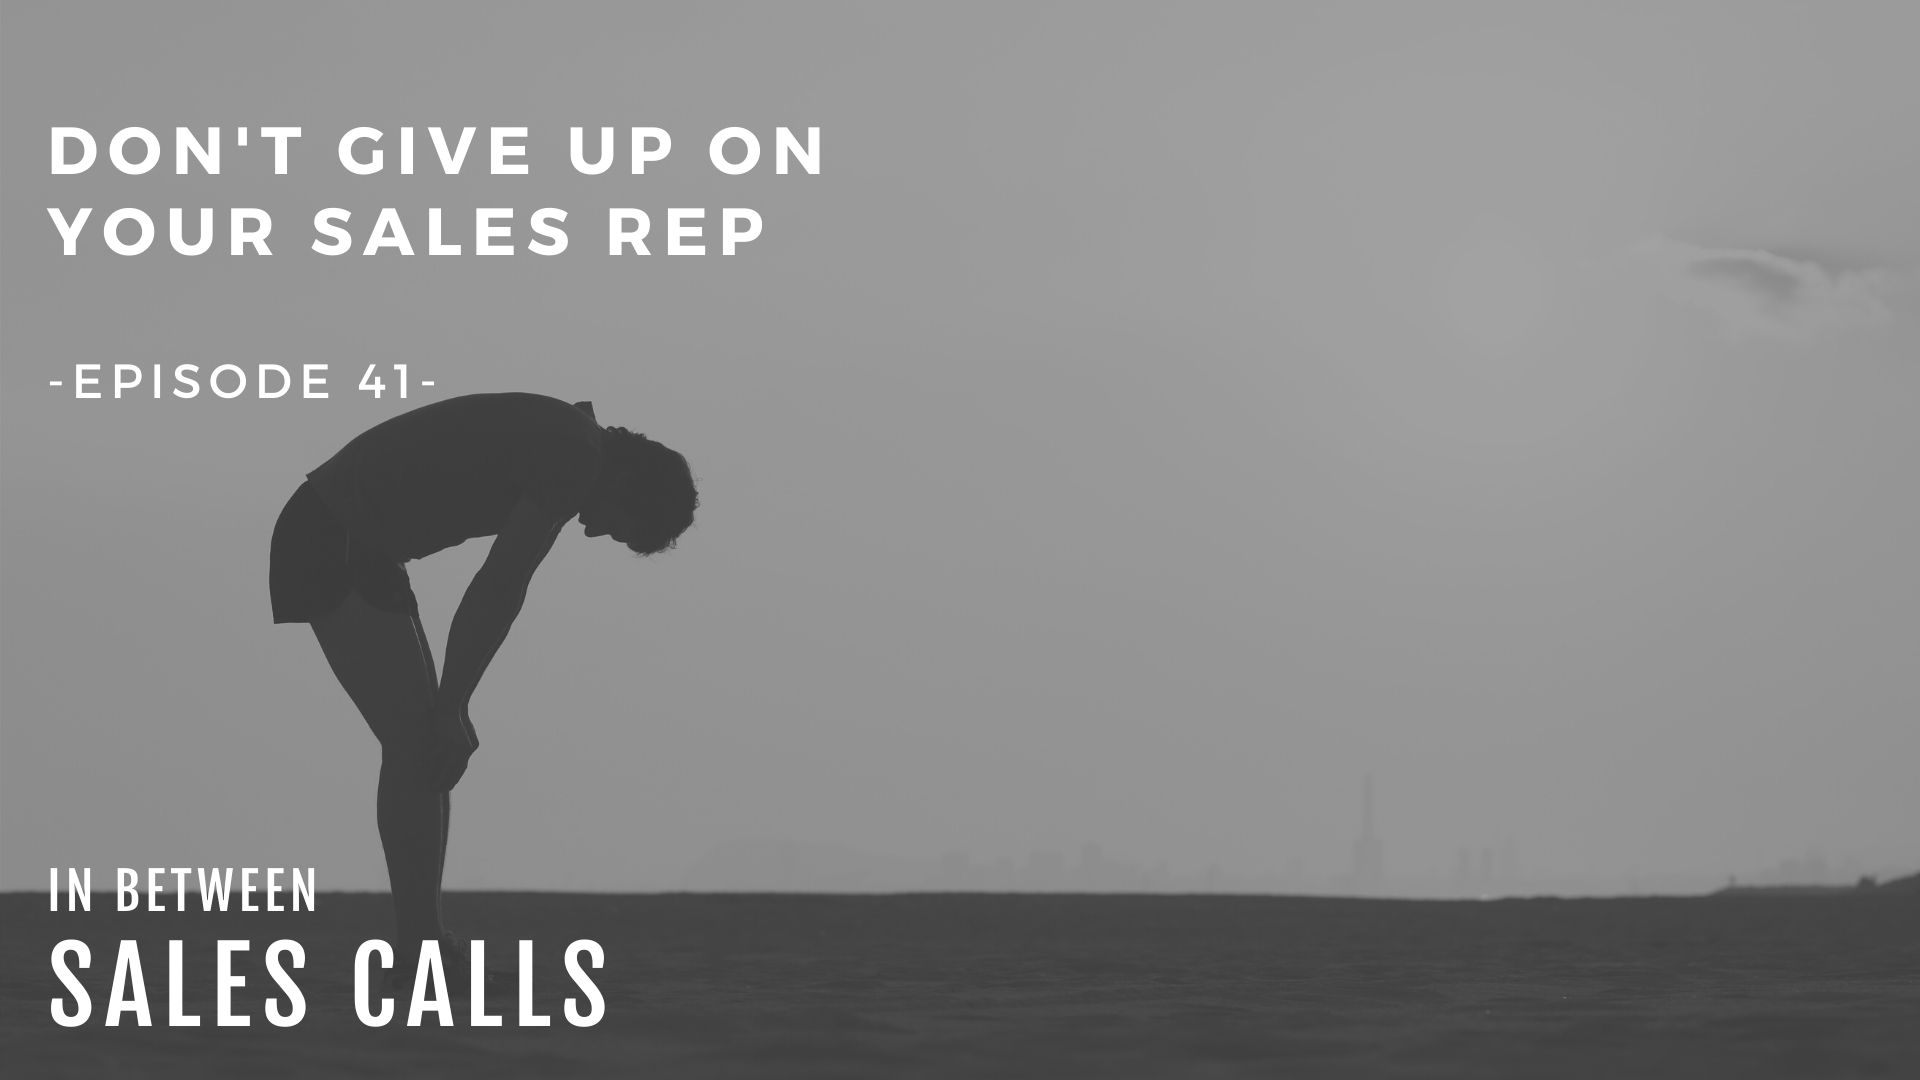 dont-give-up-on-your-sales-rep-modern-sales-training-in-between-sales-calls-podcast